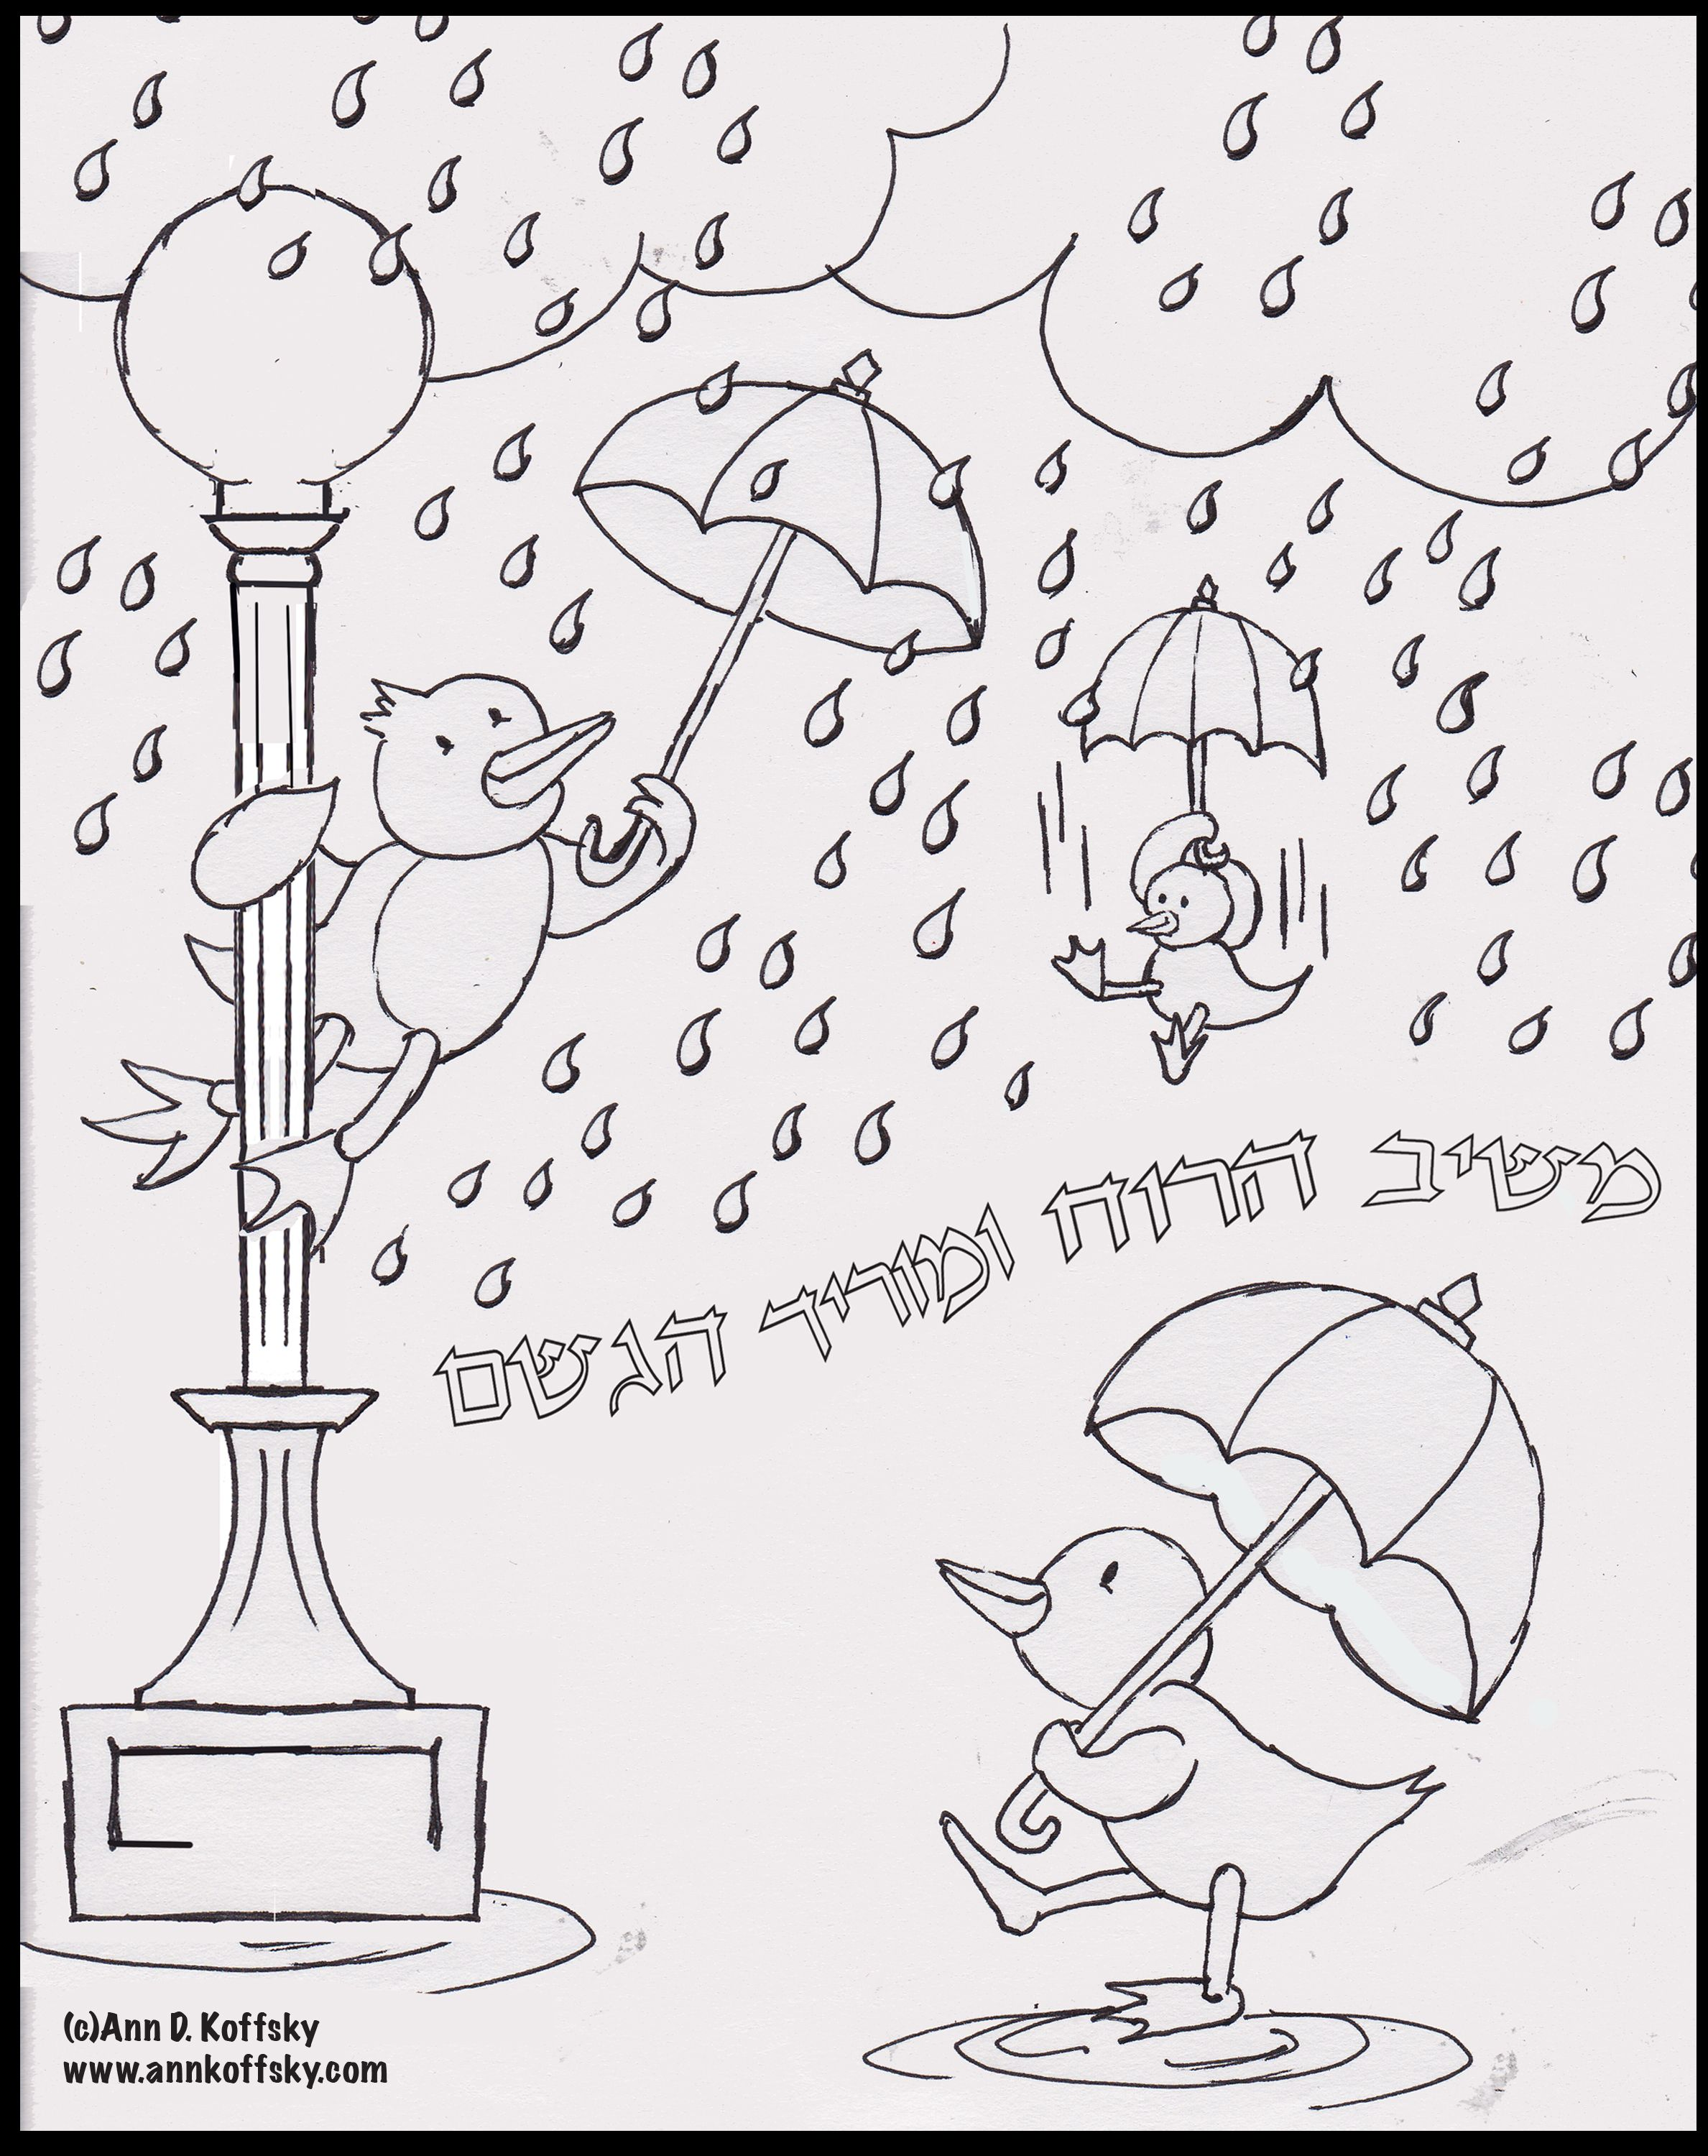 rainy coloring sheets Google Search Singin In The Rain Pinterest